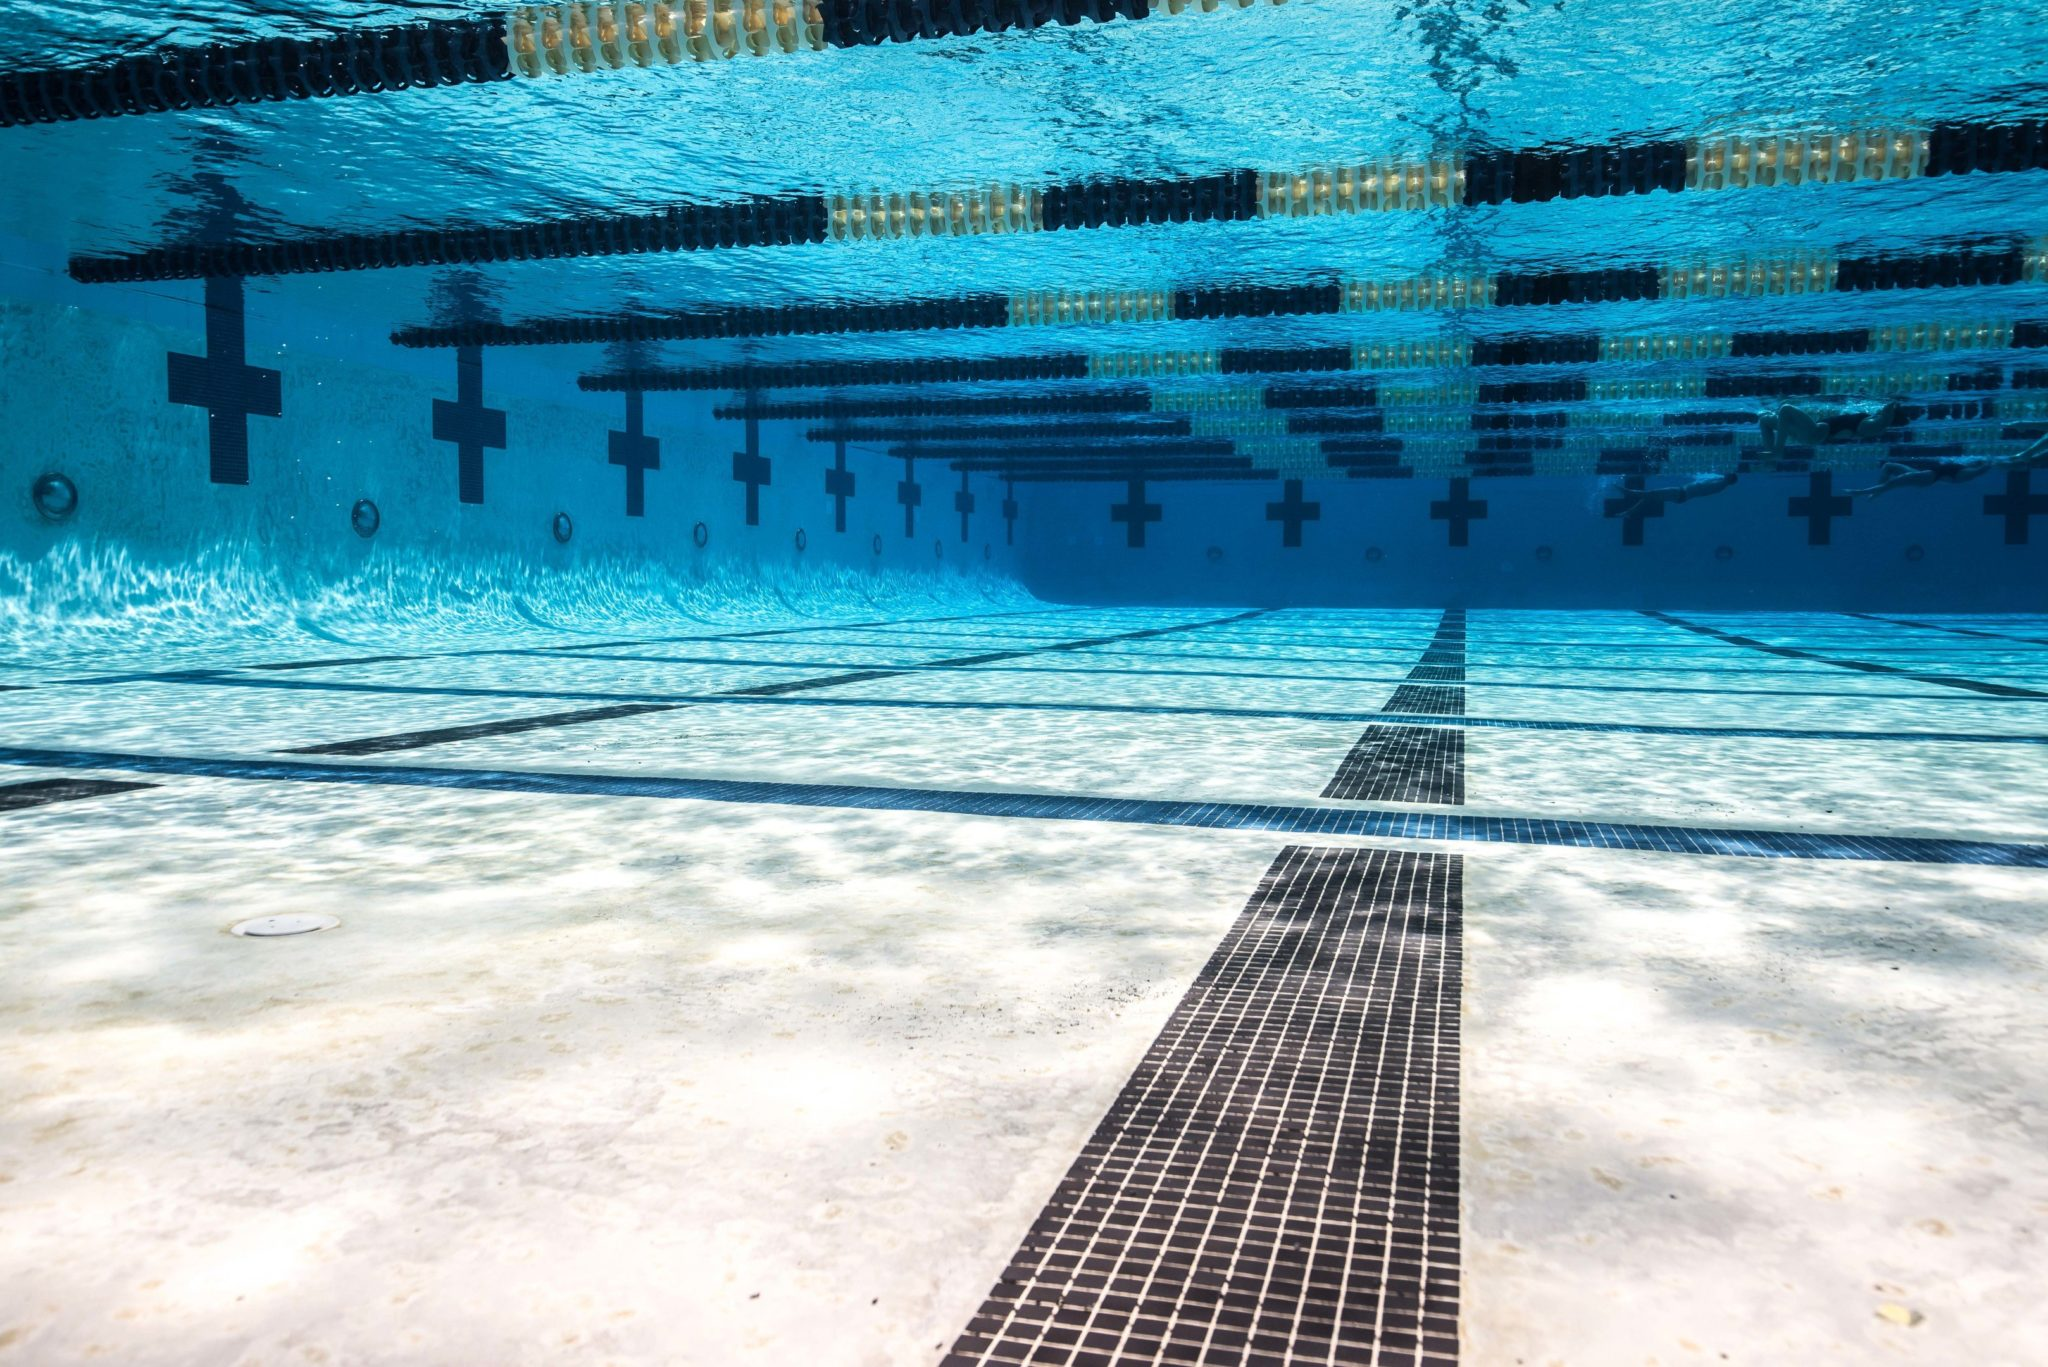 Malaysia's national aquatics coach accused of raping diving athlete